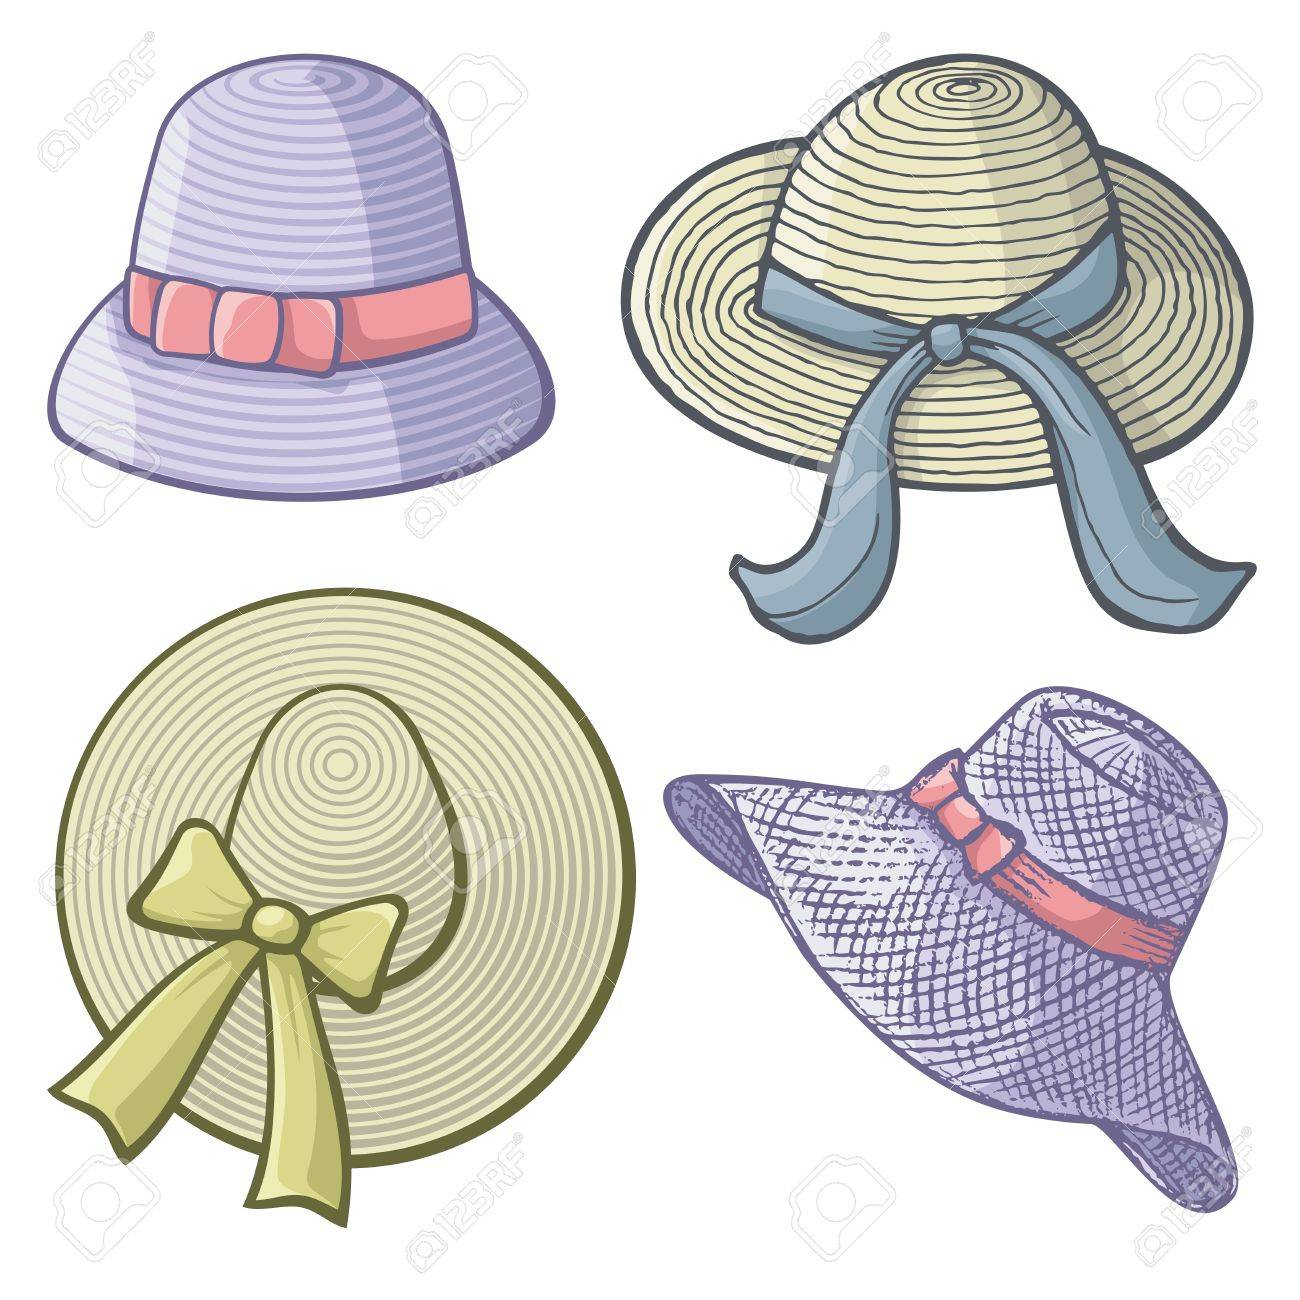 Collection of women's hats isolated on white background. - 16268858